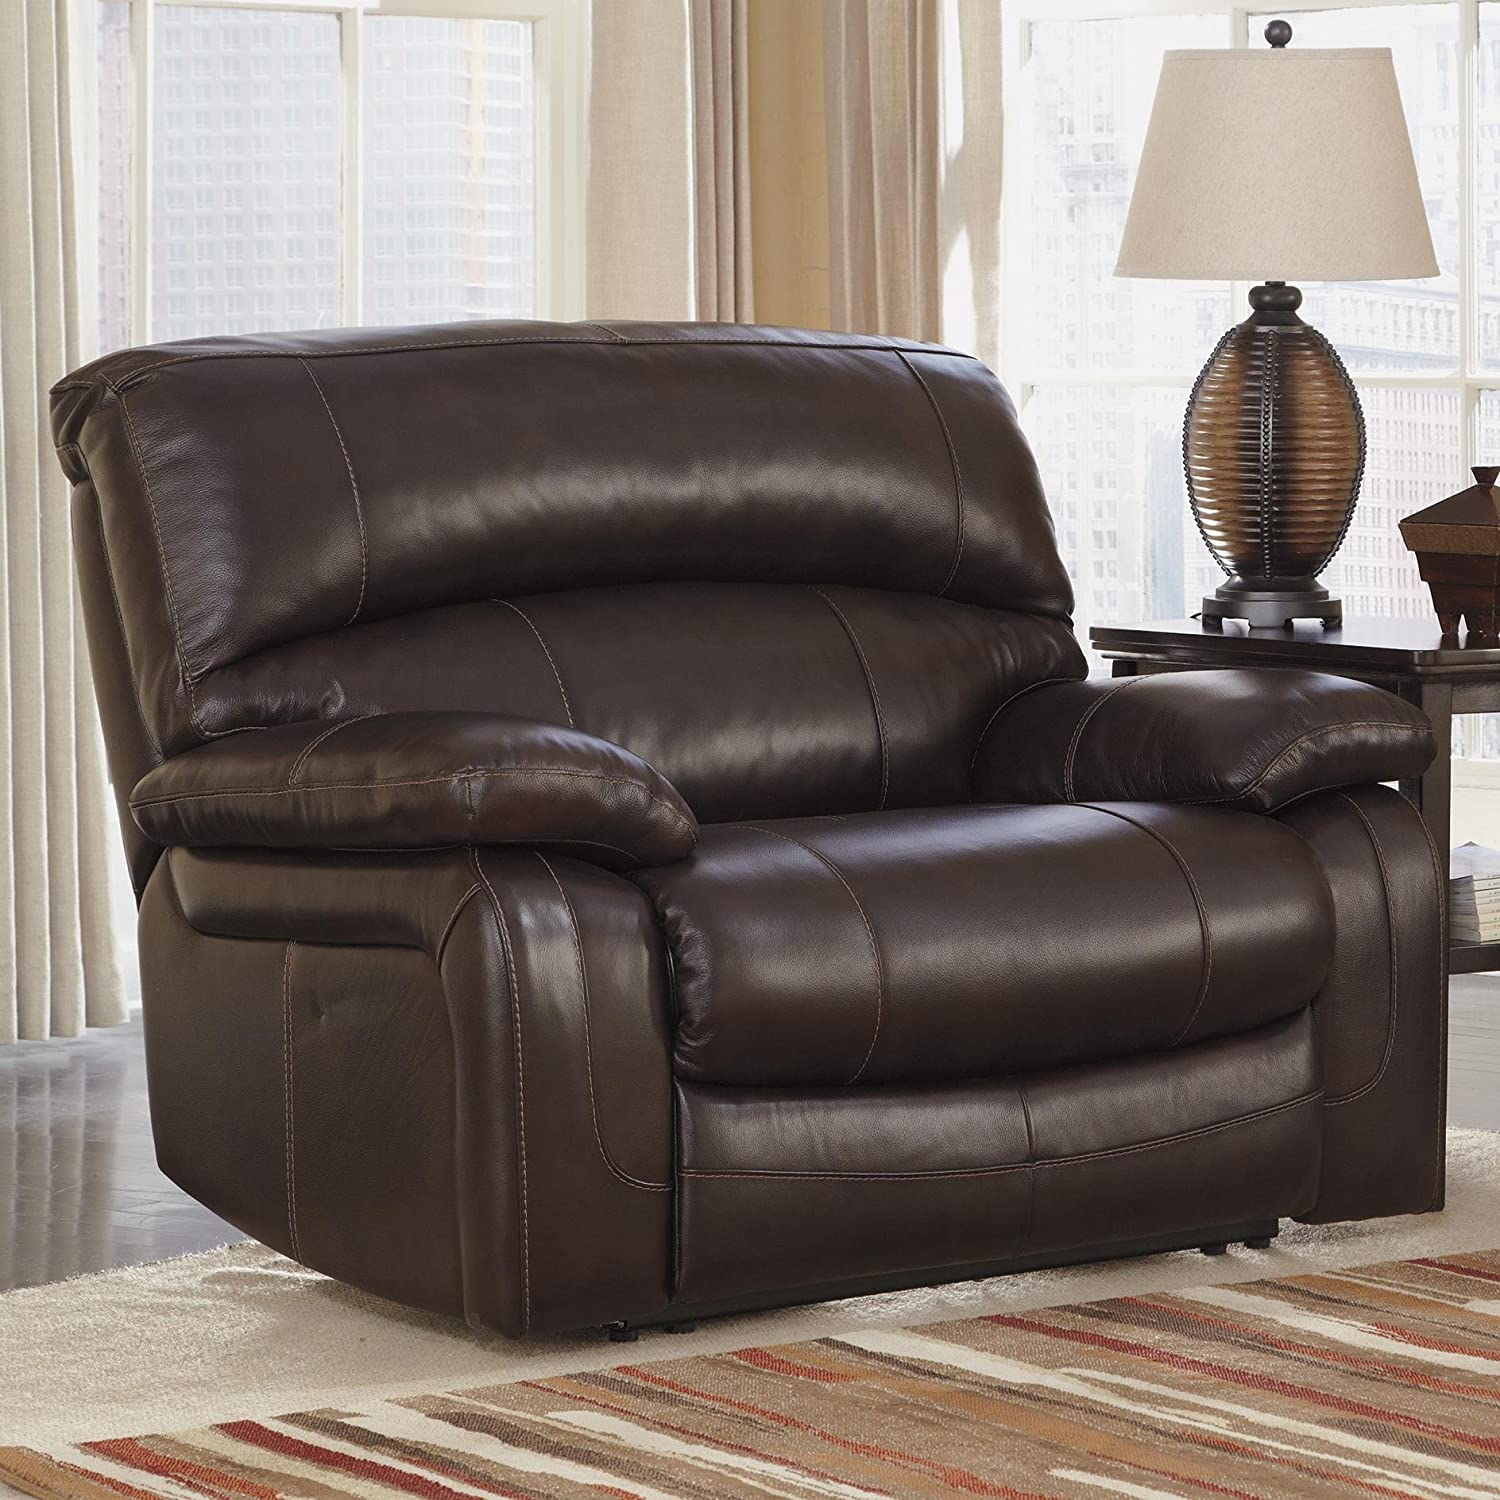 oversized recliner furniture by cuddlier upholstery wayfair love ll wide umberger simmons recliners you